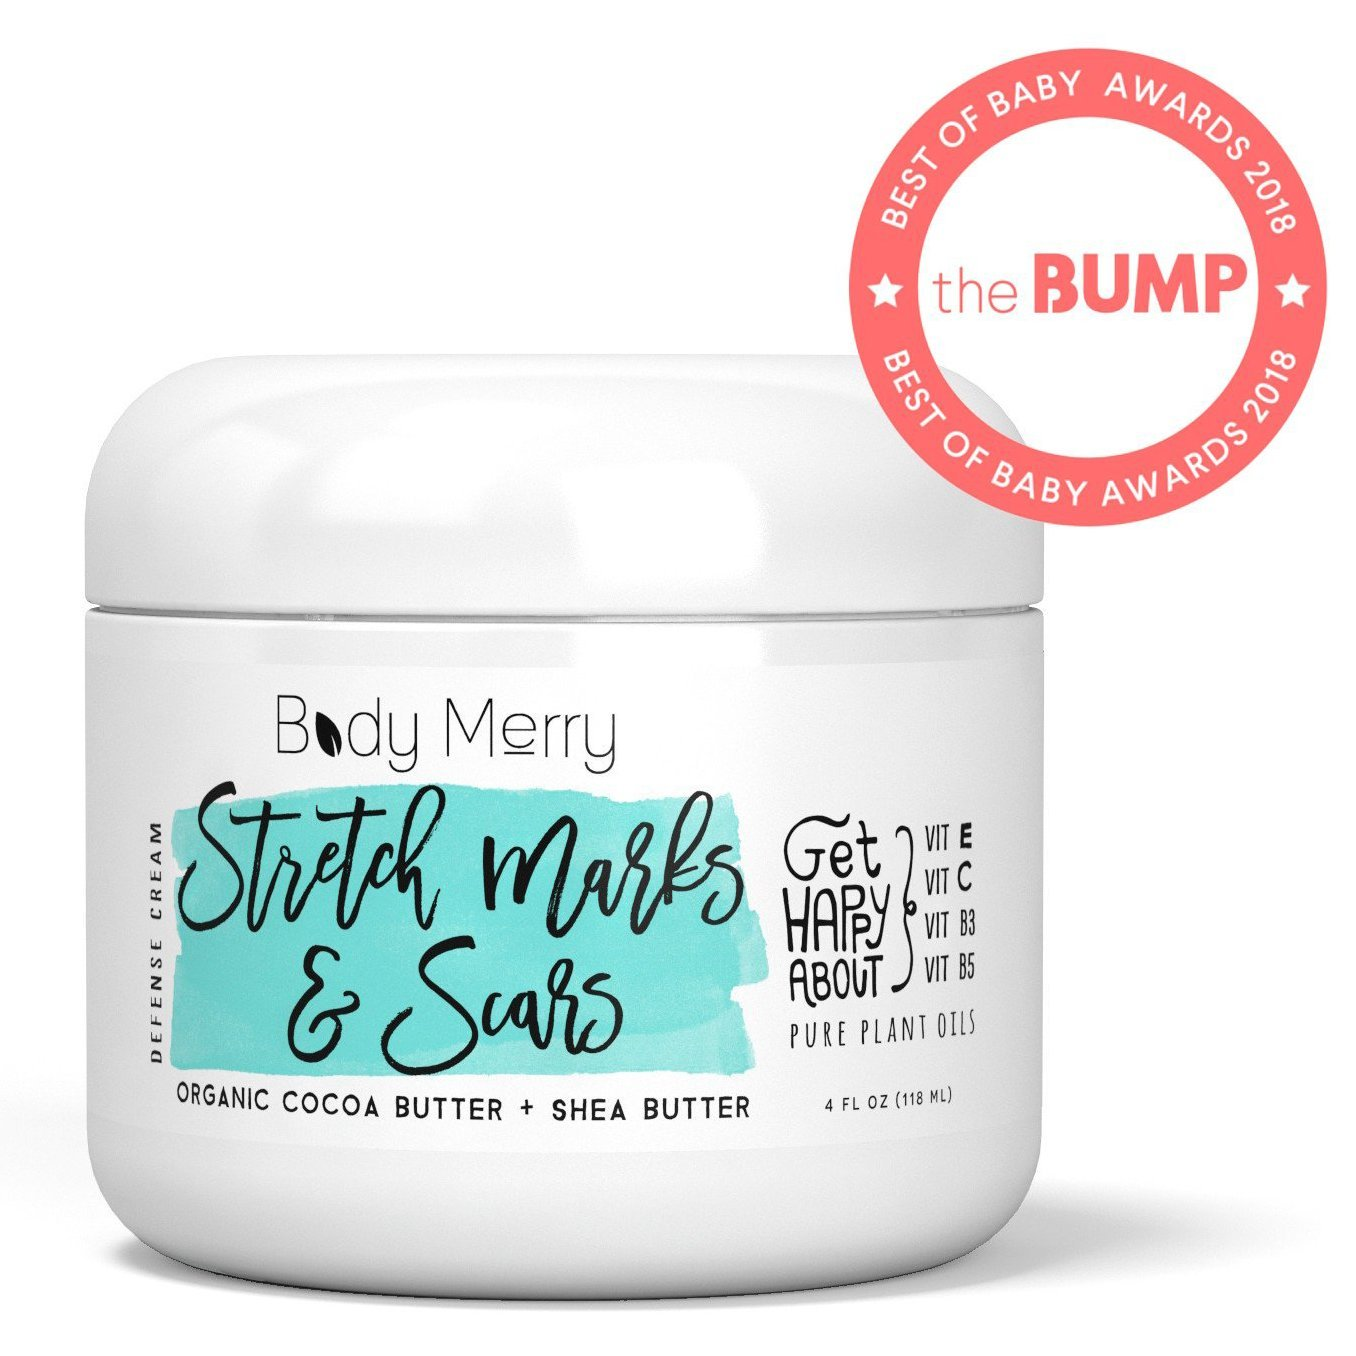 Stretch Marks & Scars Defense Cream Daily Moisturizer w Organic Cocoa Butter + Shea + Plant Oils + Vitamins to Prevent, Reduce and Fade Away Old or New Scars Best for Pregnancy, Men/Bodybuilders (4oz) by Body Merry